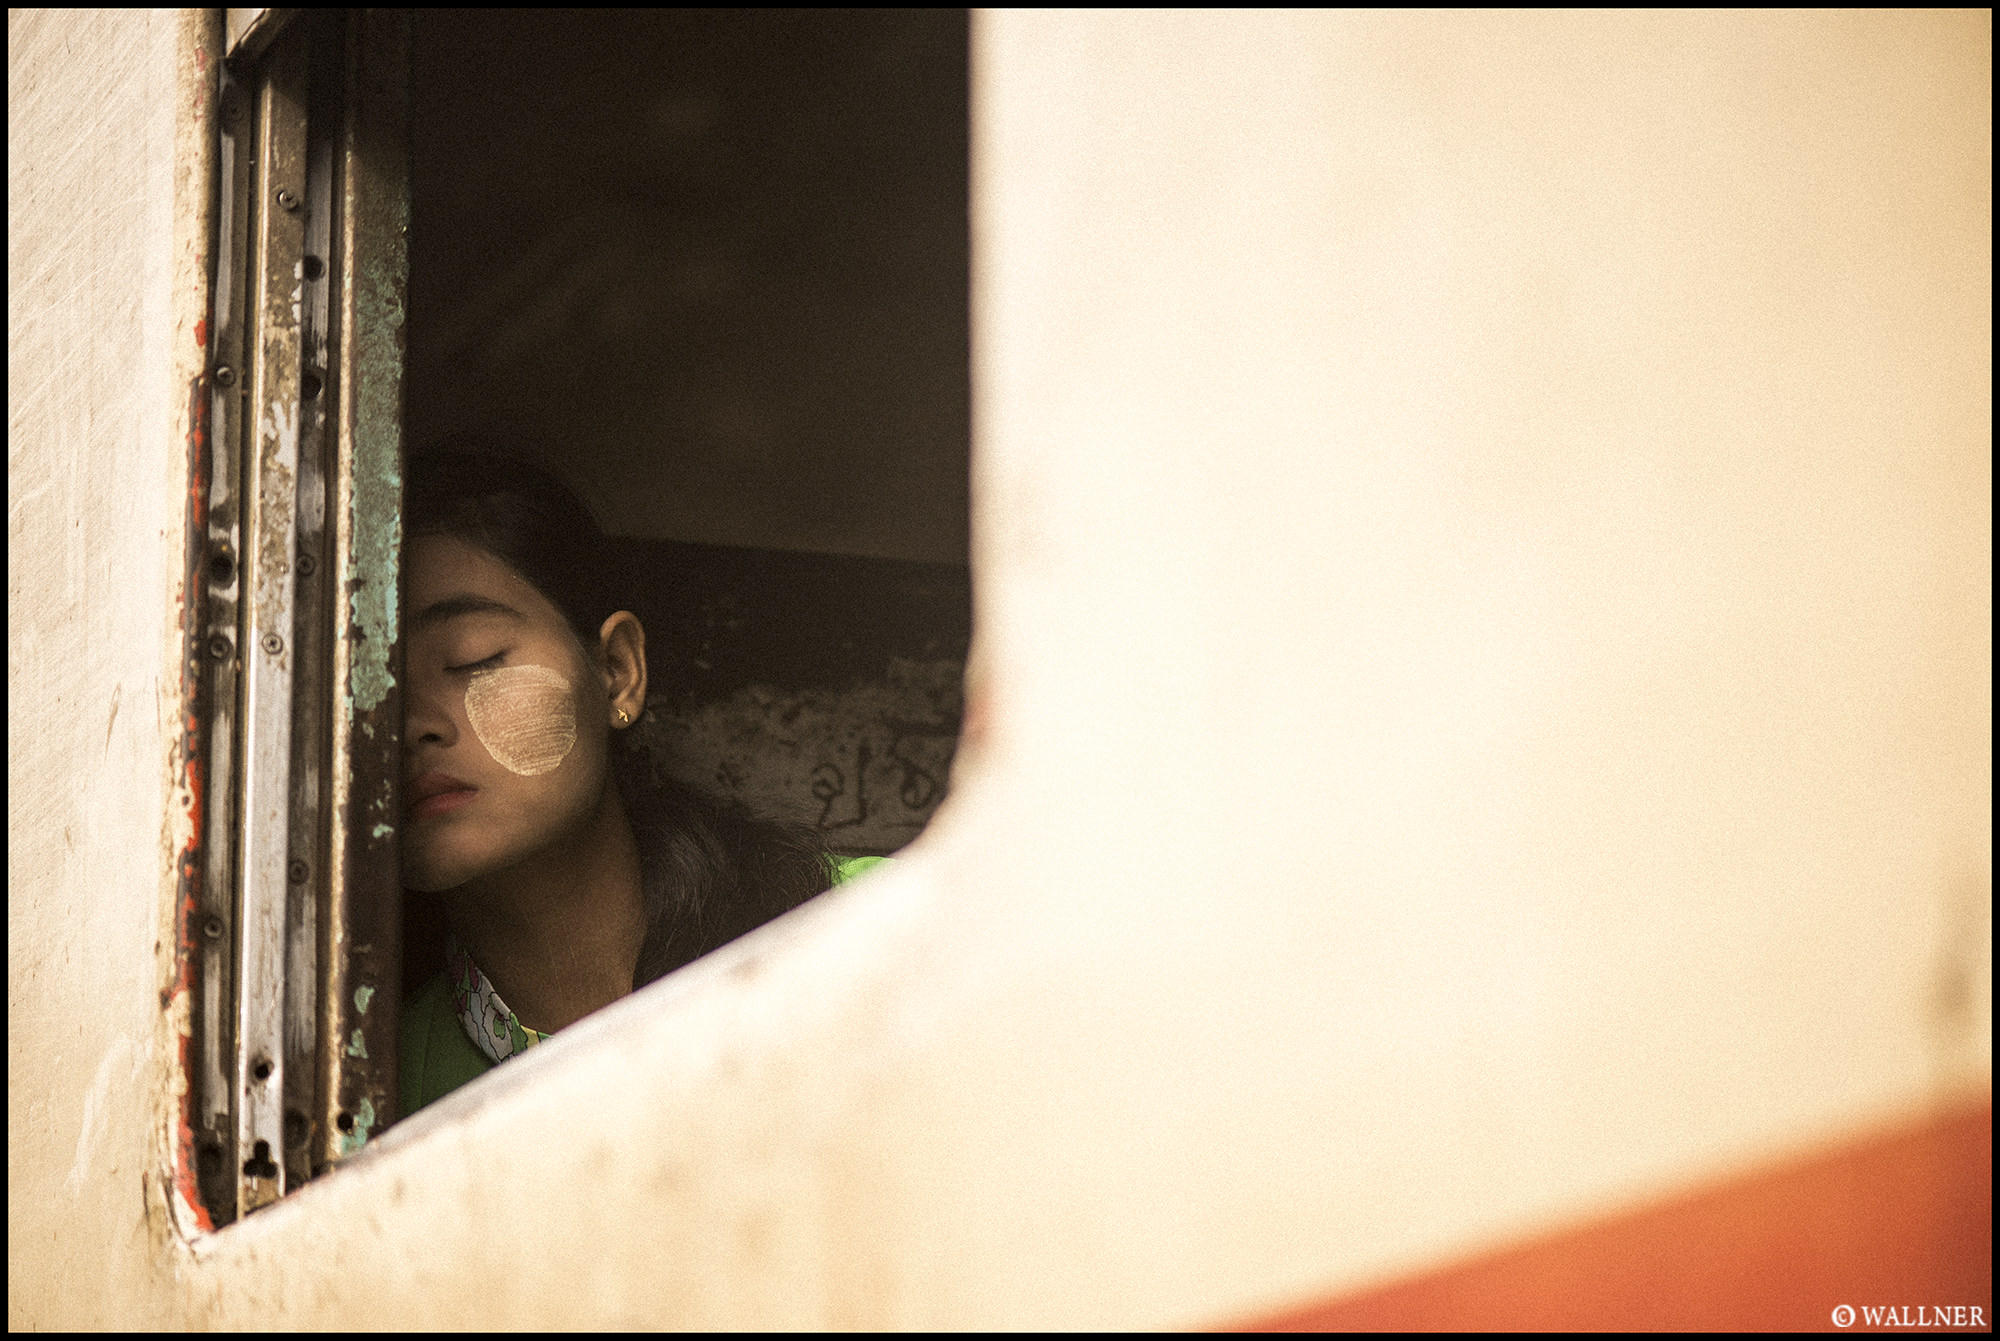 Digital Patrik Wallner Yangon Sleepy Window LOWQ 2000P w WM